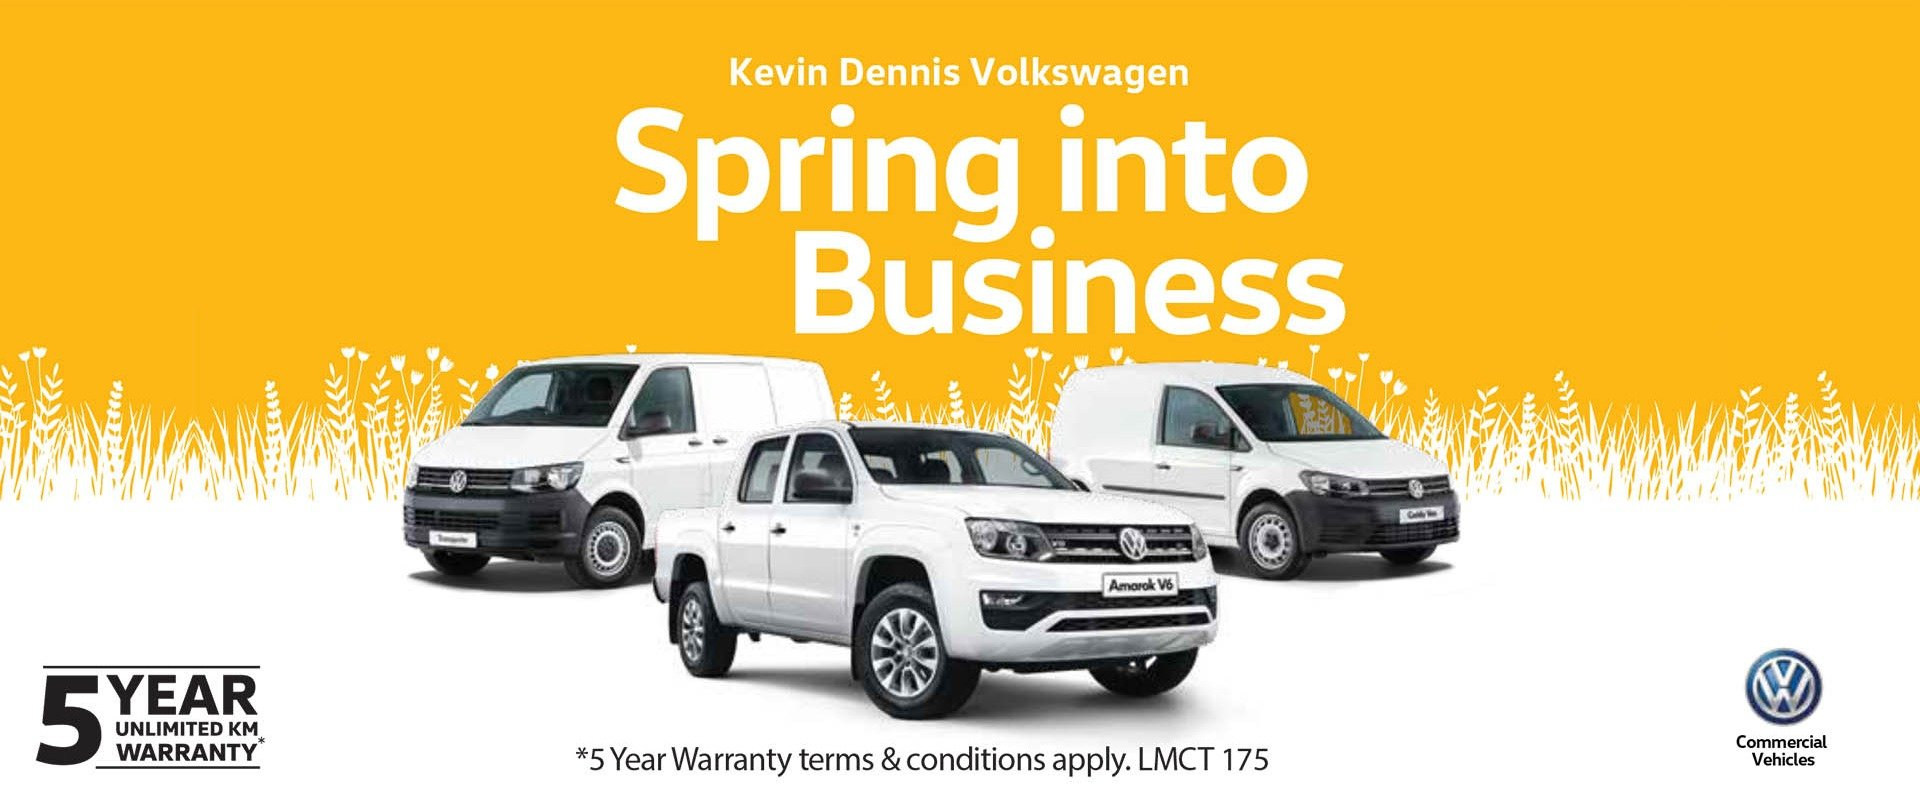 Spring into Business